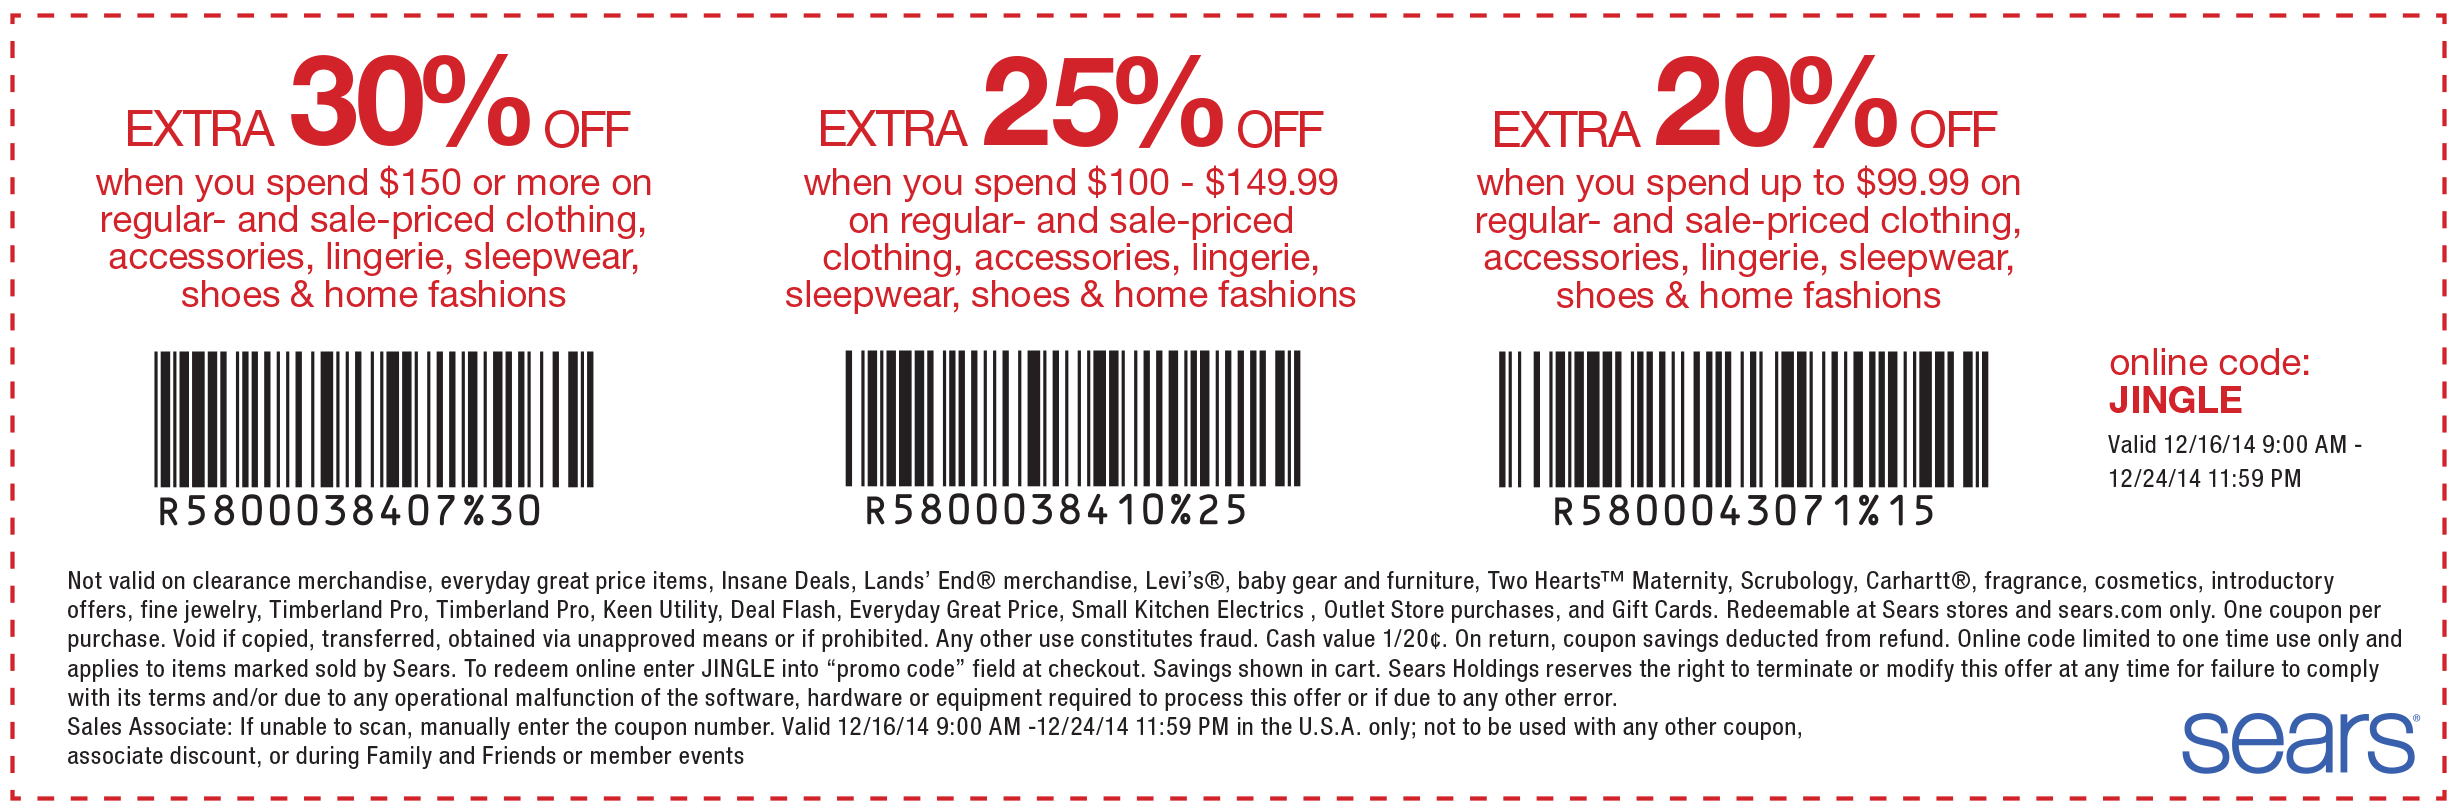 Sears parts coupon code 20